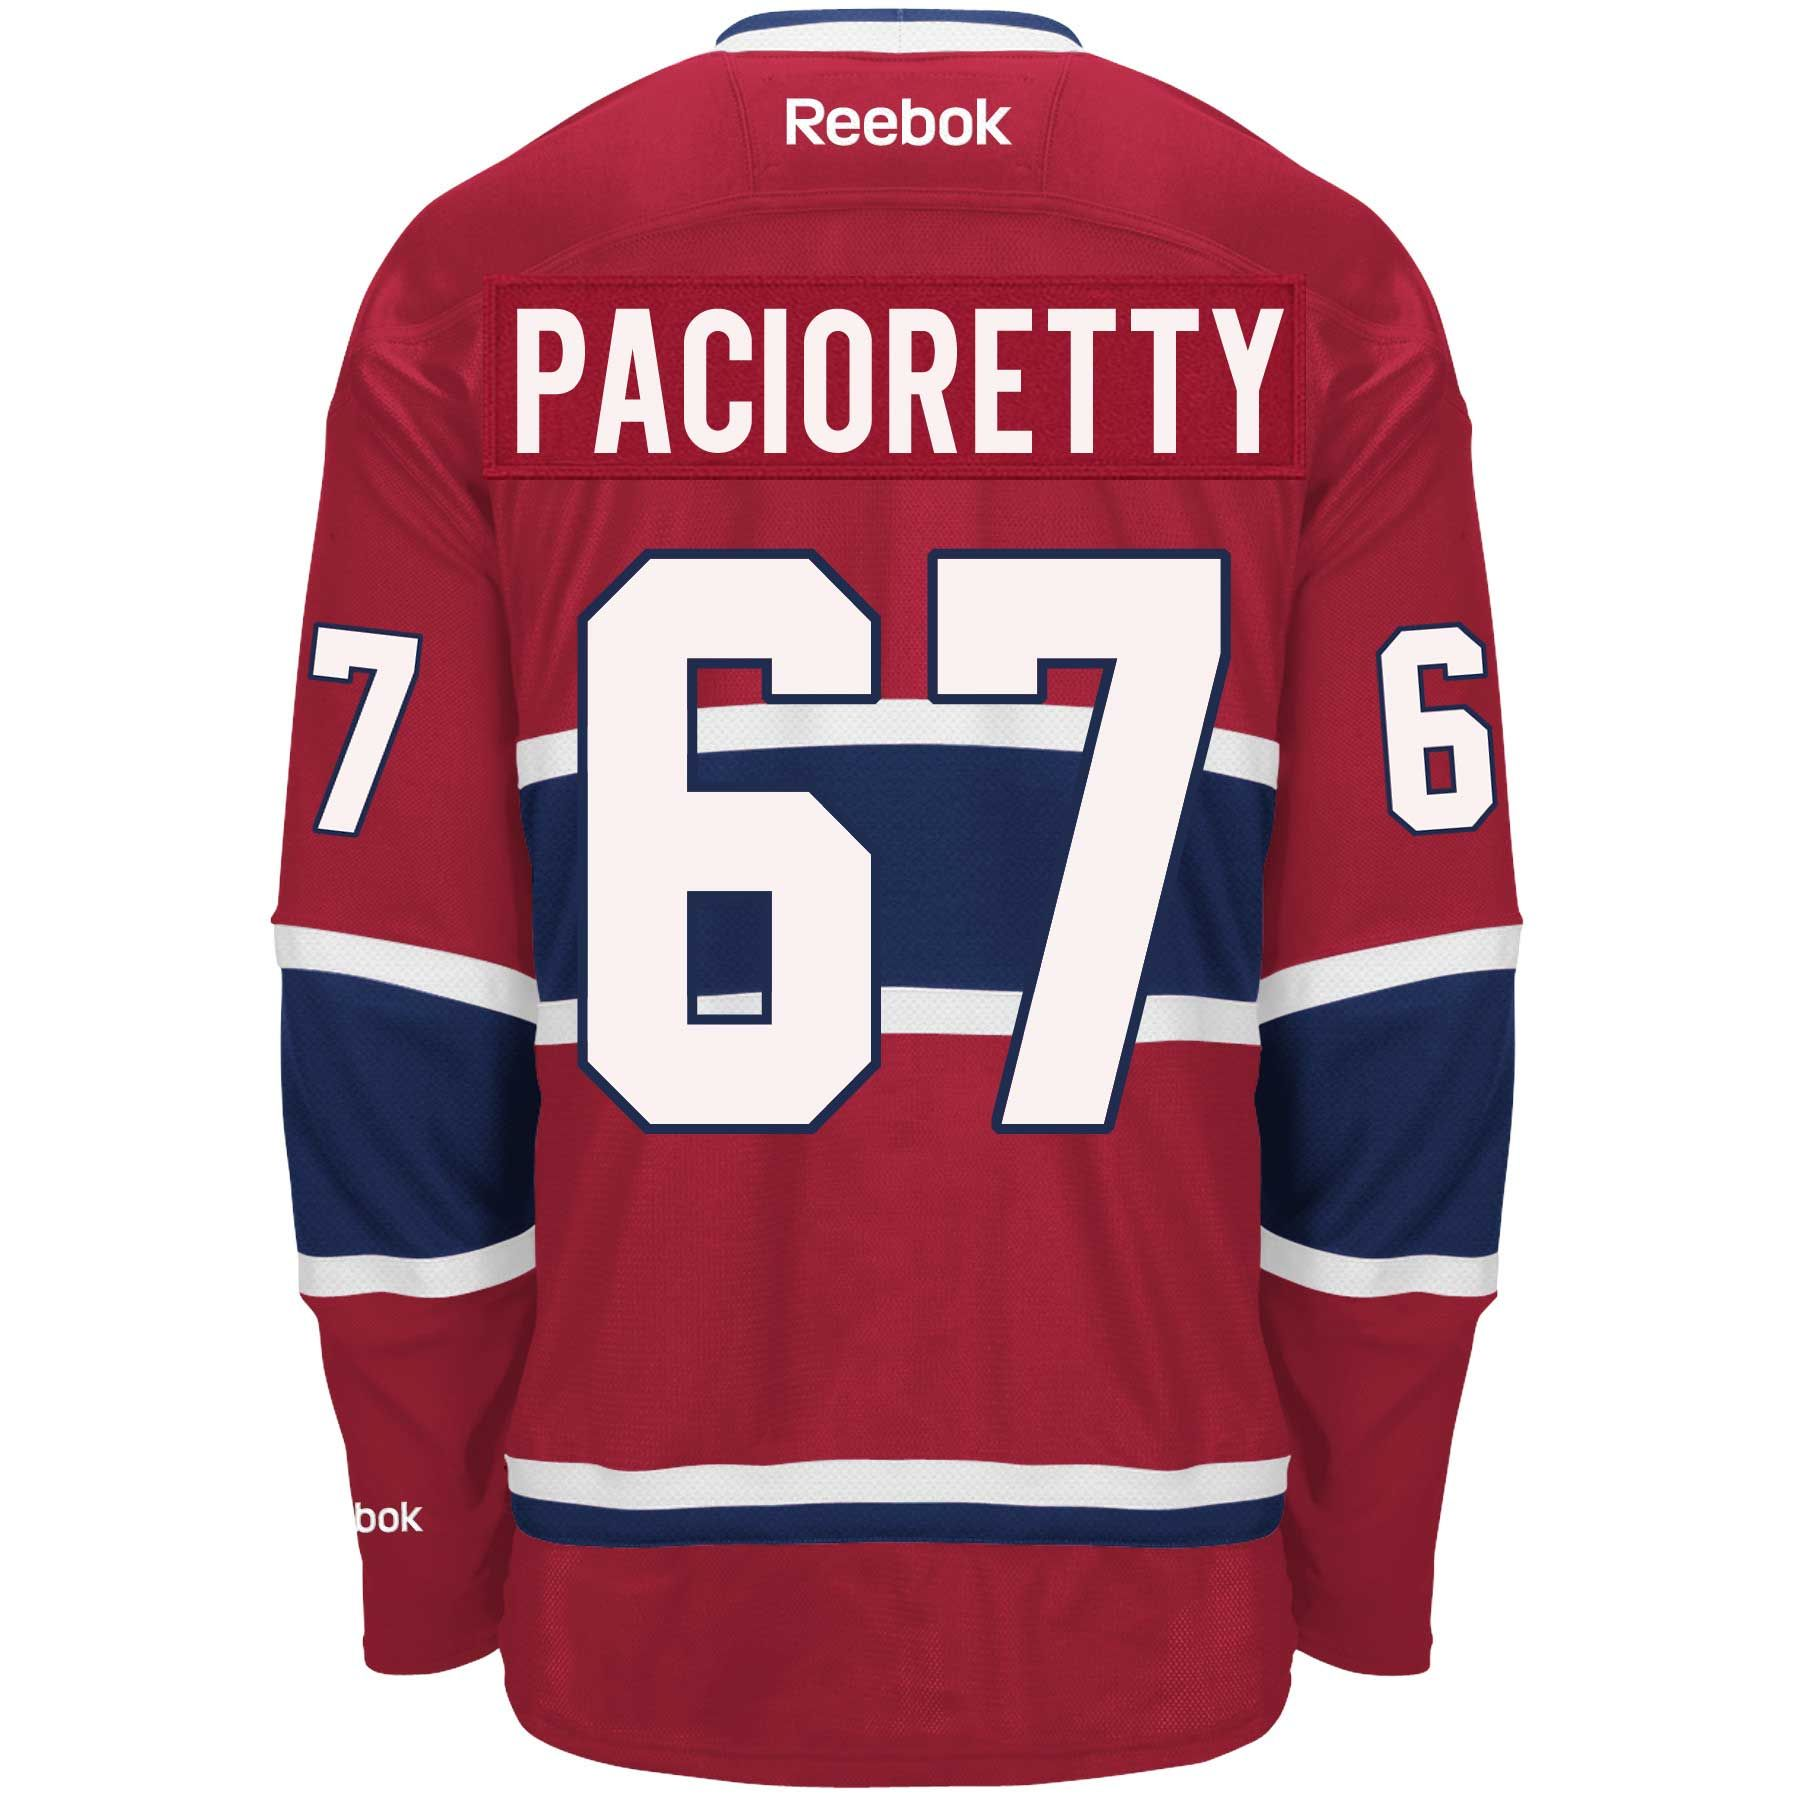 b30998667 I gotta add this to my collection -  Habs  GoHabsGo  Pacioretty (   murdering the rebok logo which is own by addids) - IceJerseys.com USA -  Official Fan Shop